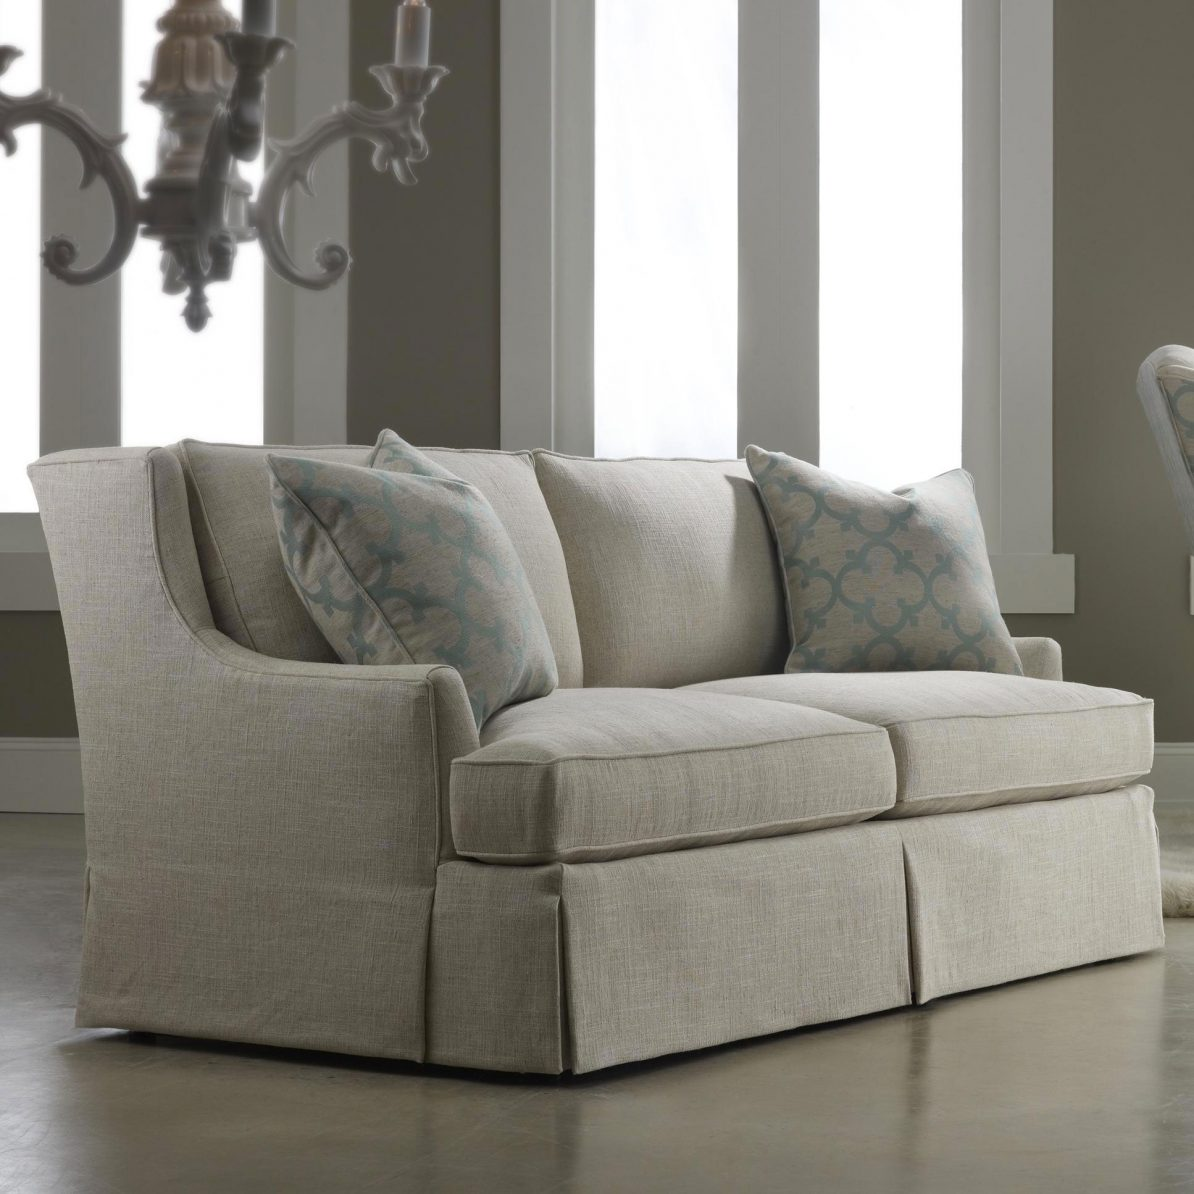 Merveilleux Frequently Asked Questions: Sofa Skirts